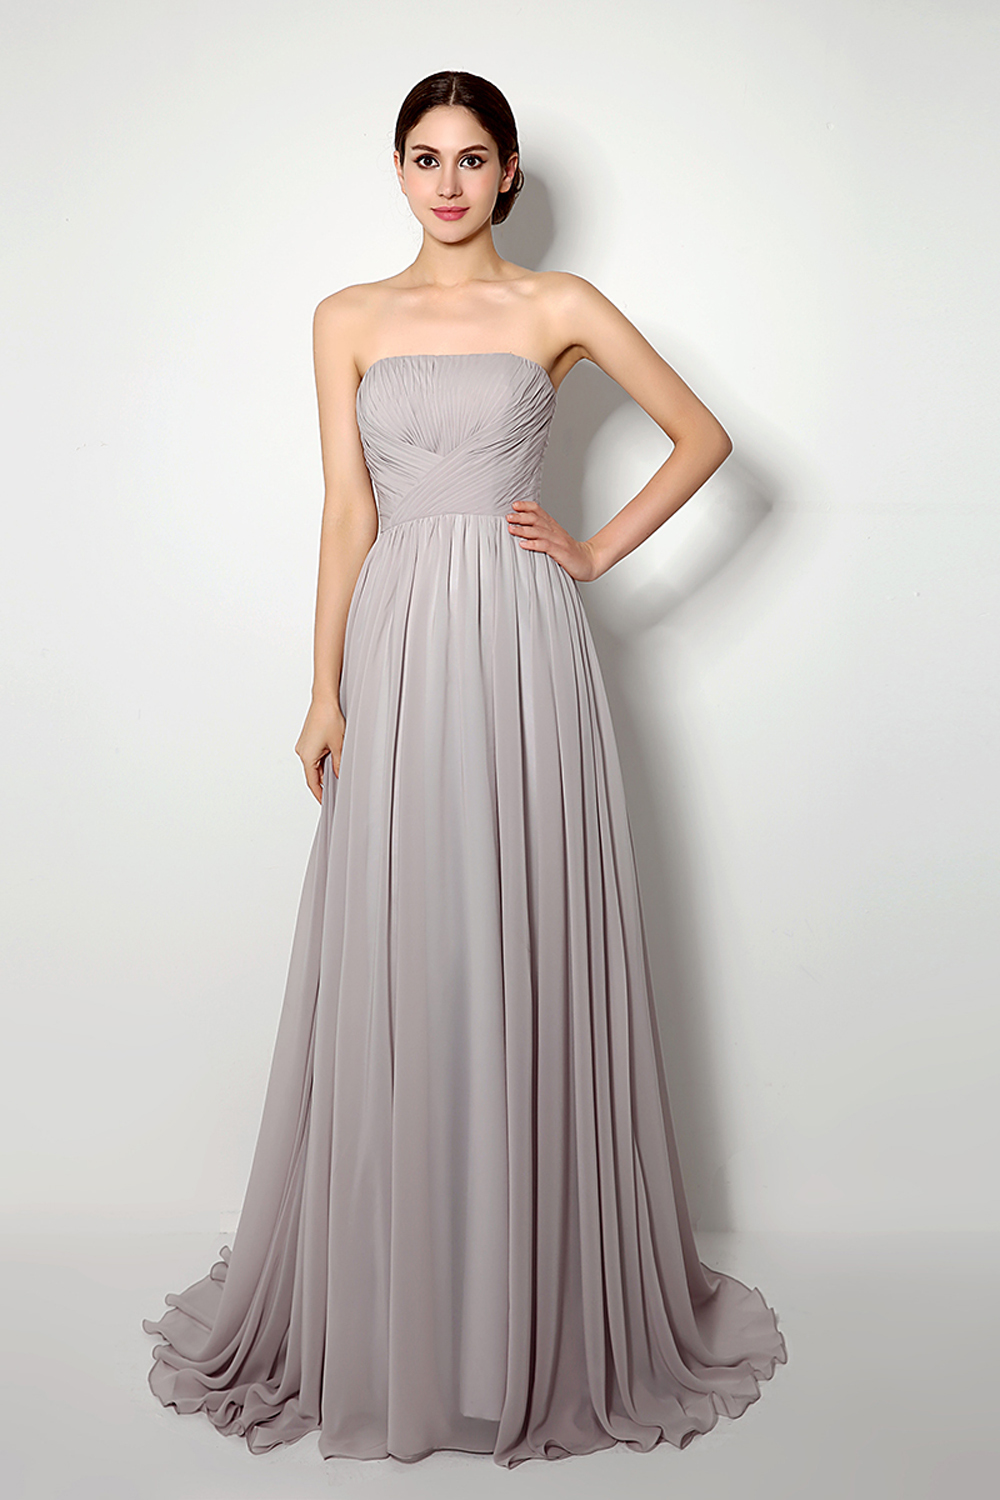 A-linie / prinzessin chiffon bodenlange dress für prom night